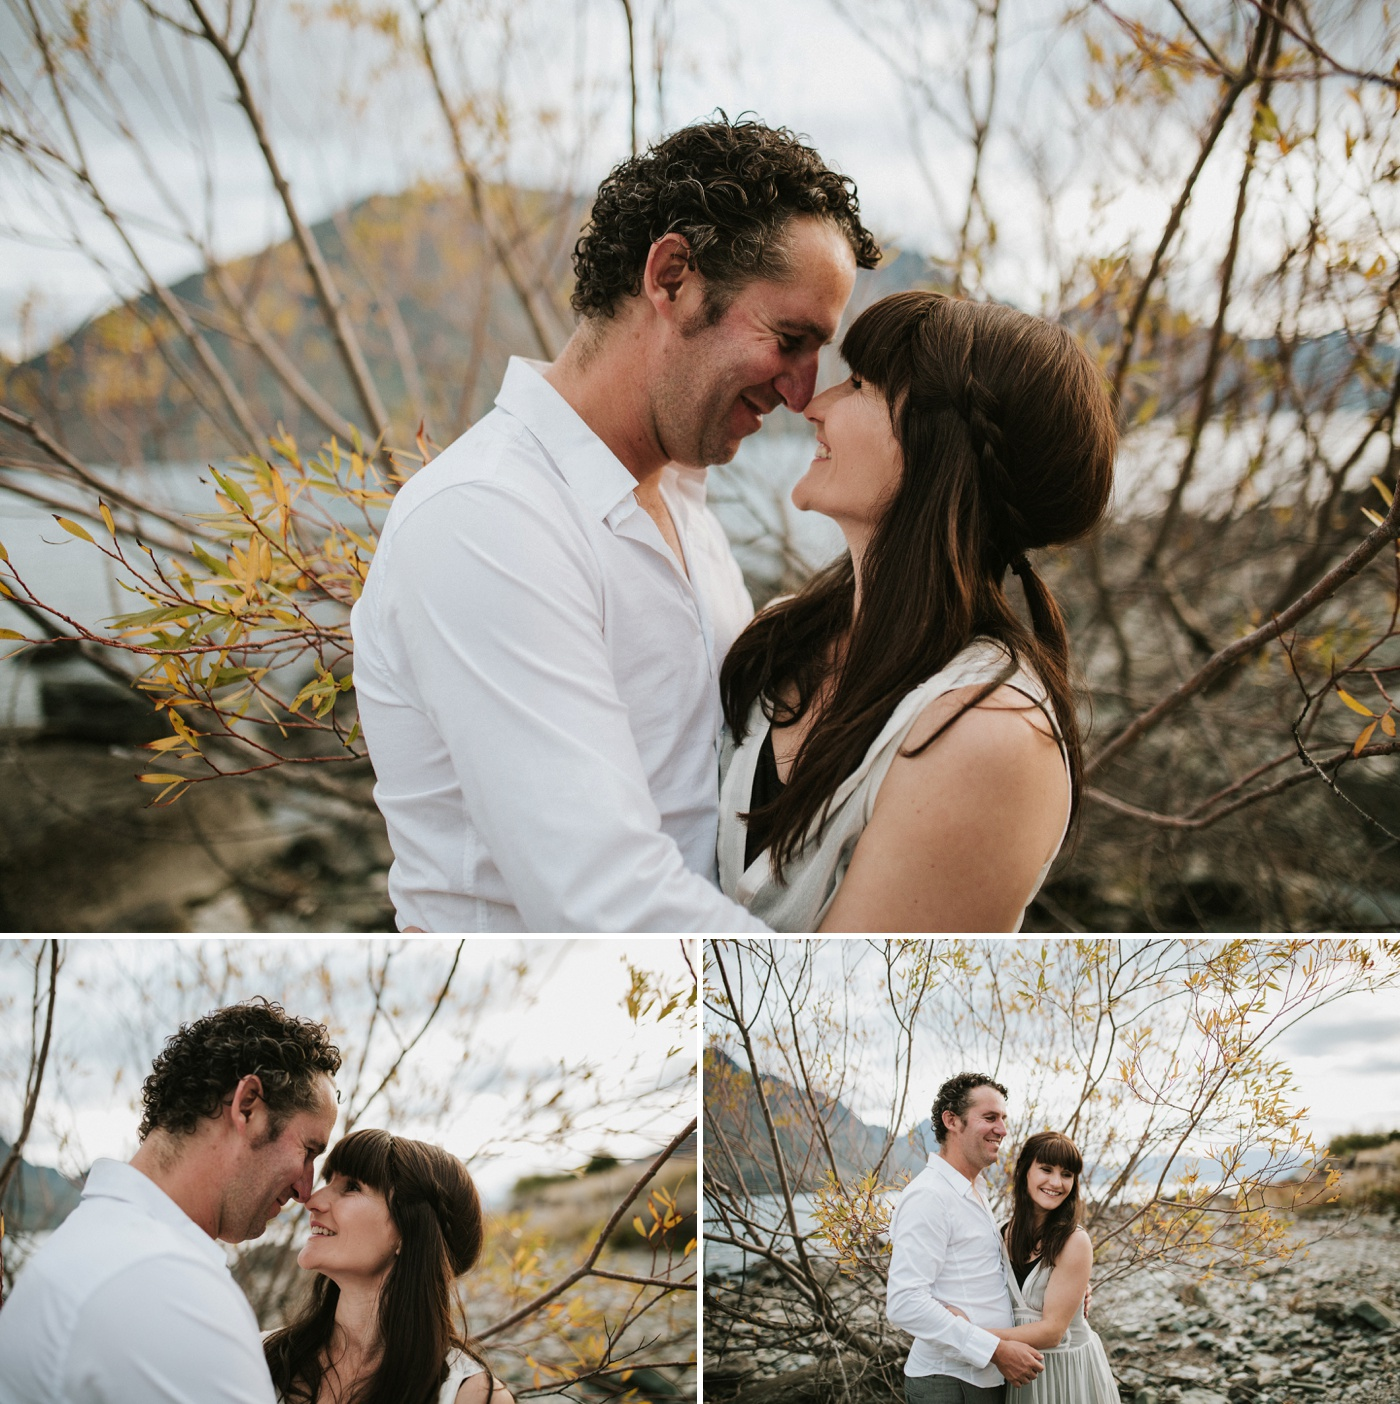 Relaxed-Natural-Sweet-New-Zealand-Queenstown-Engagement-Session_Melbourne-Wedding-Photography_20